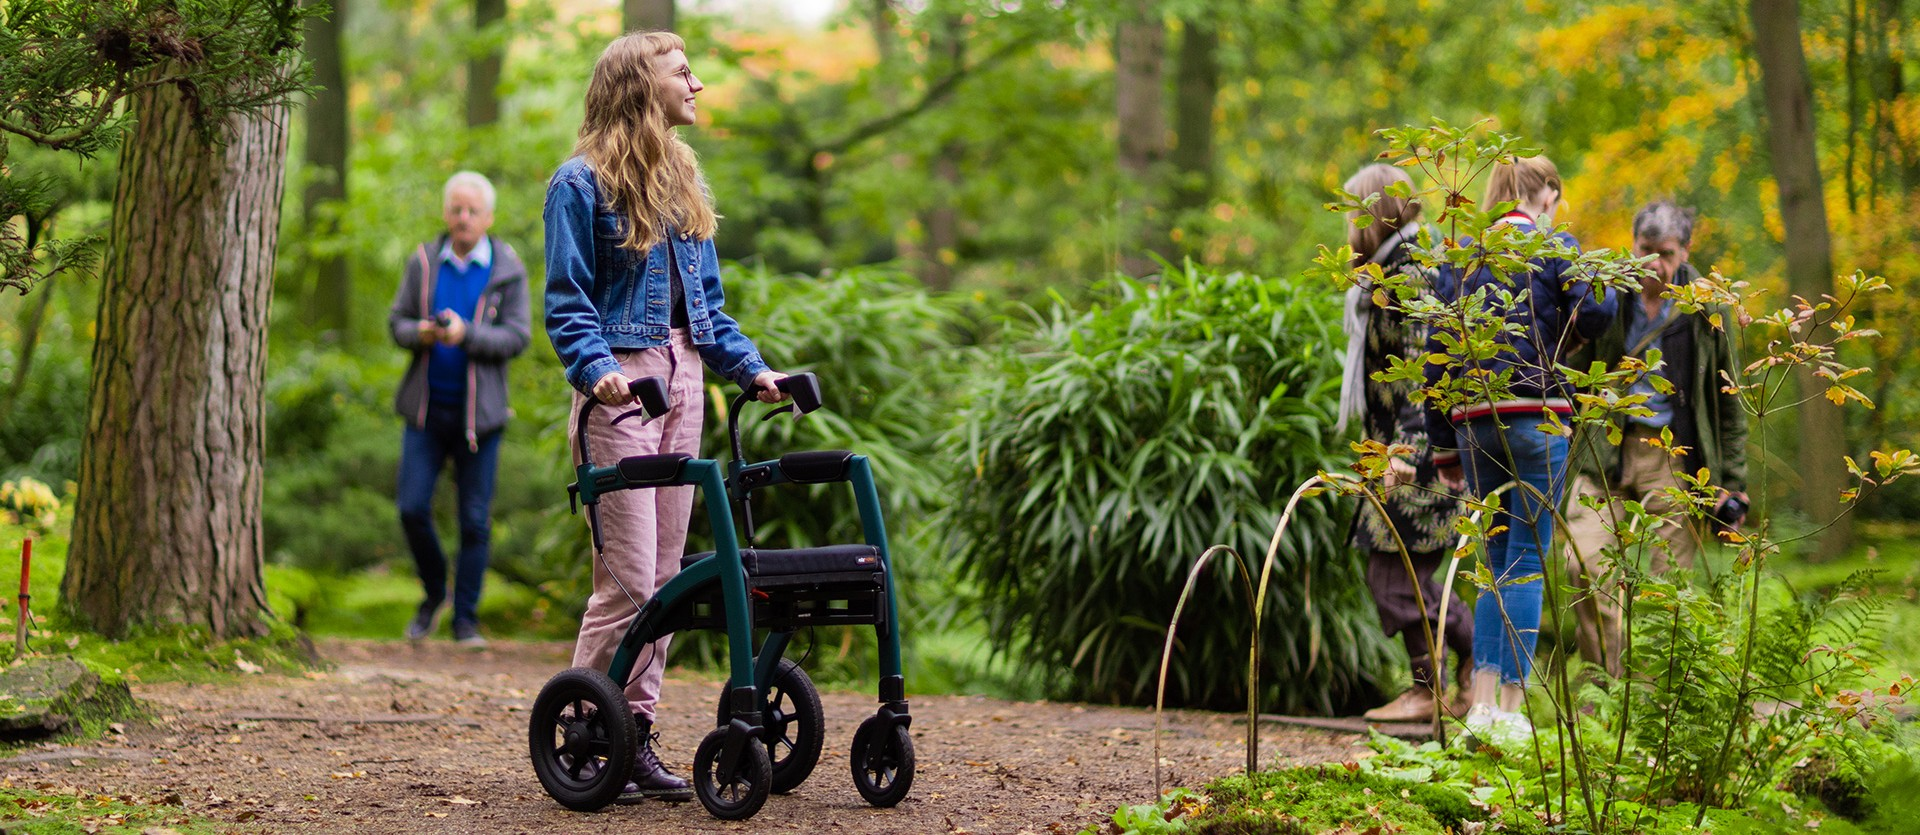 Young girl walking with a Rollz Motion Performance rollator with air tyres in a forest